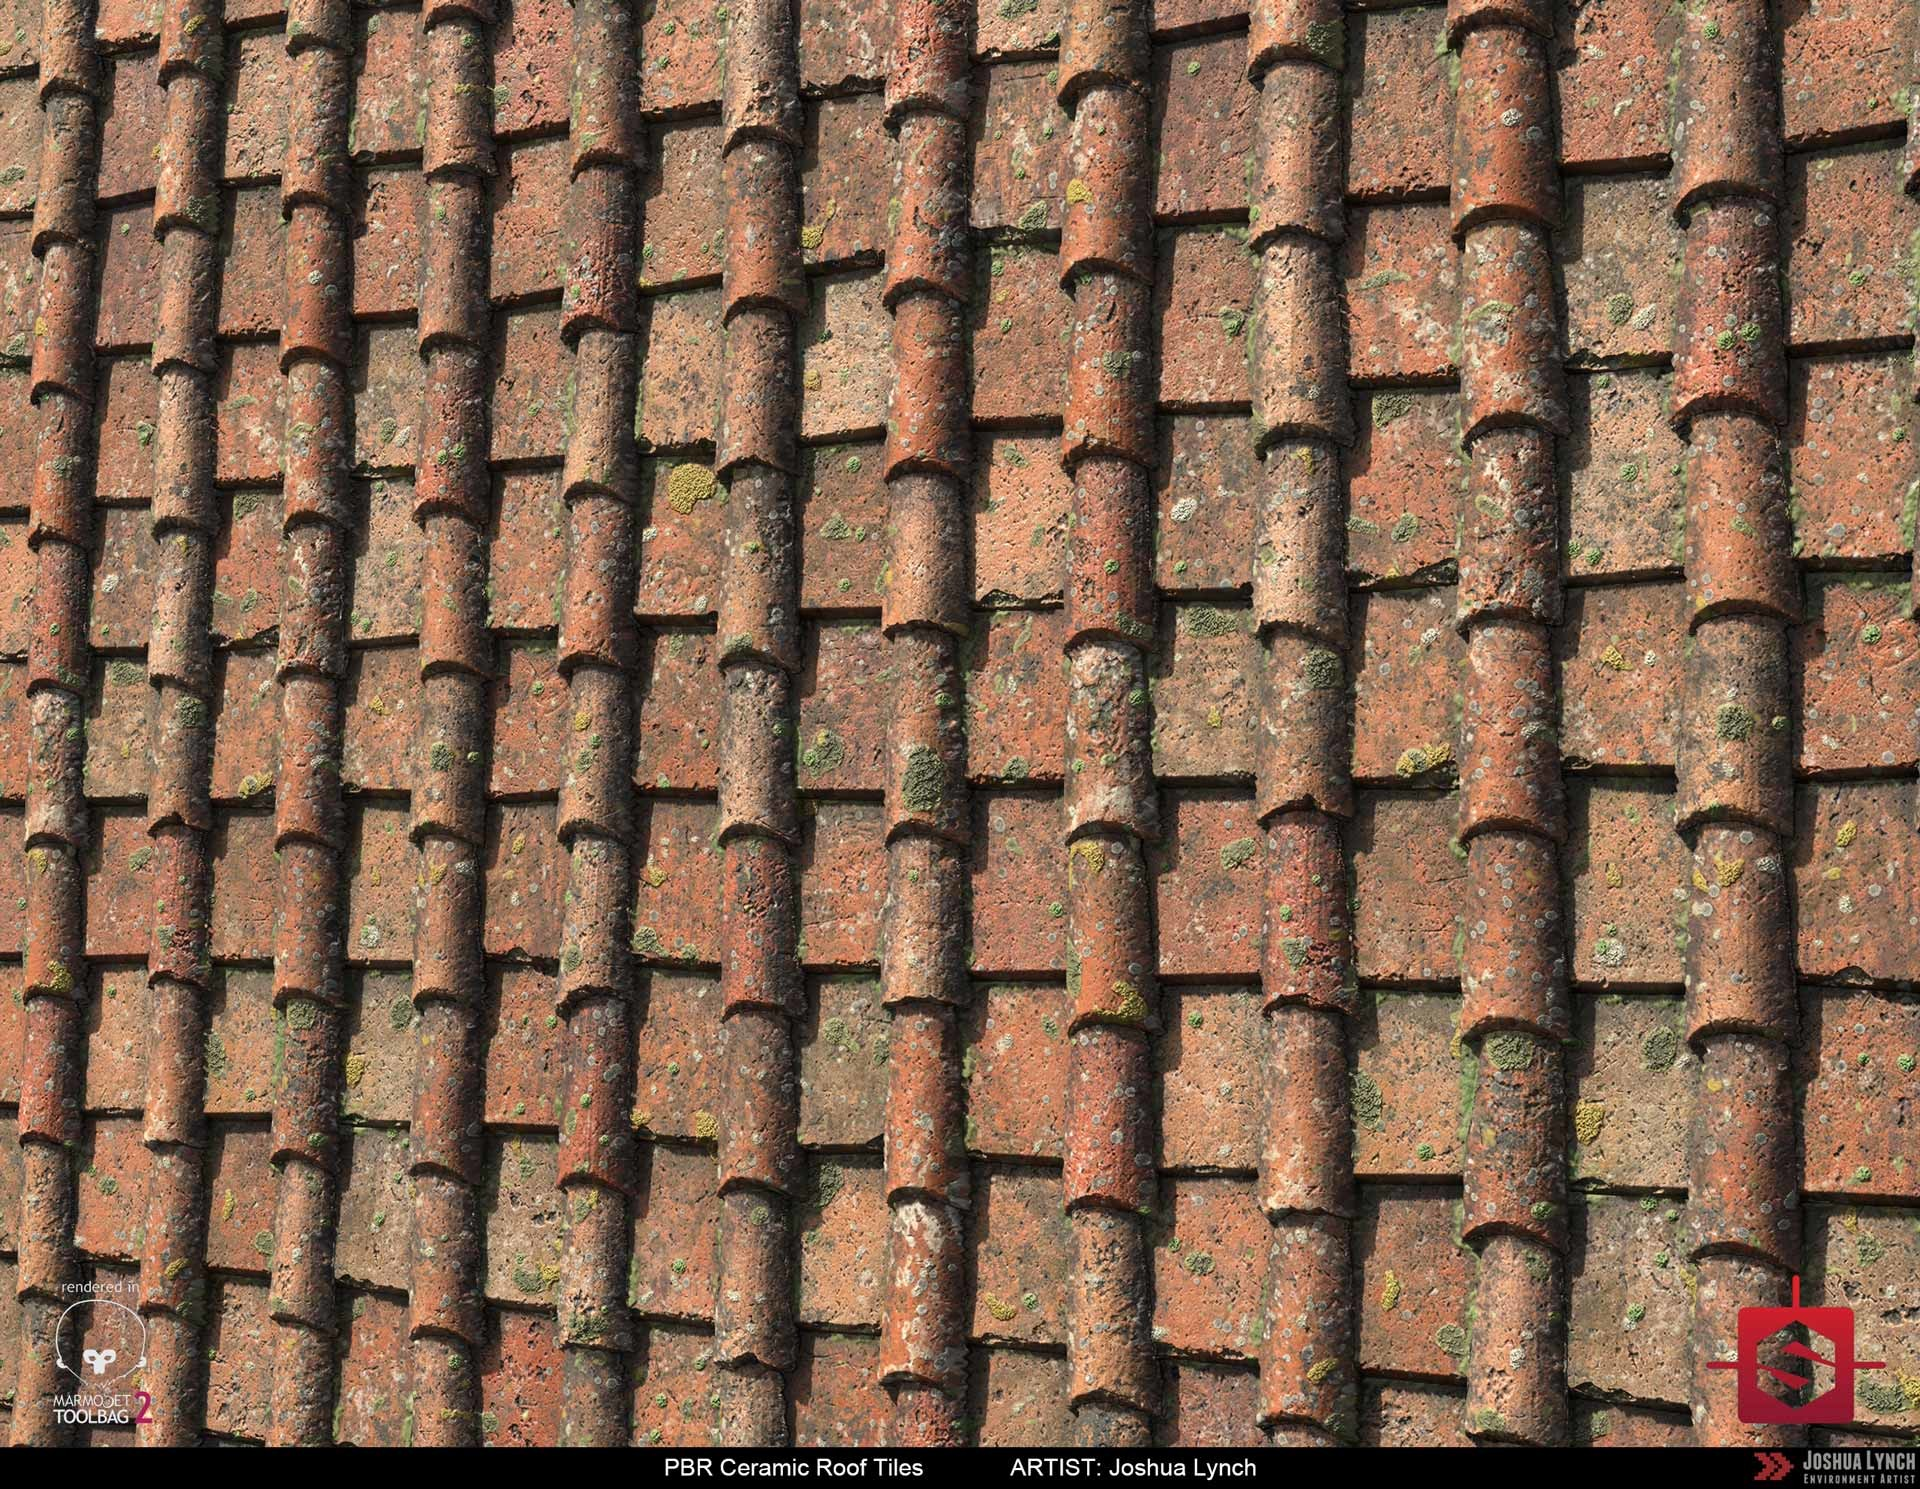 Artstation pbr procedural ceramic roof tiles material study 02 artstation pbr procedural ceramic roof tiles material study 02 joshua lynch dailygadgetfo Images